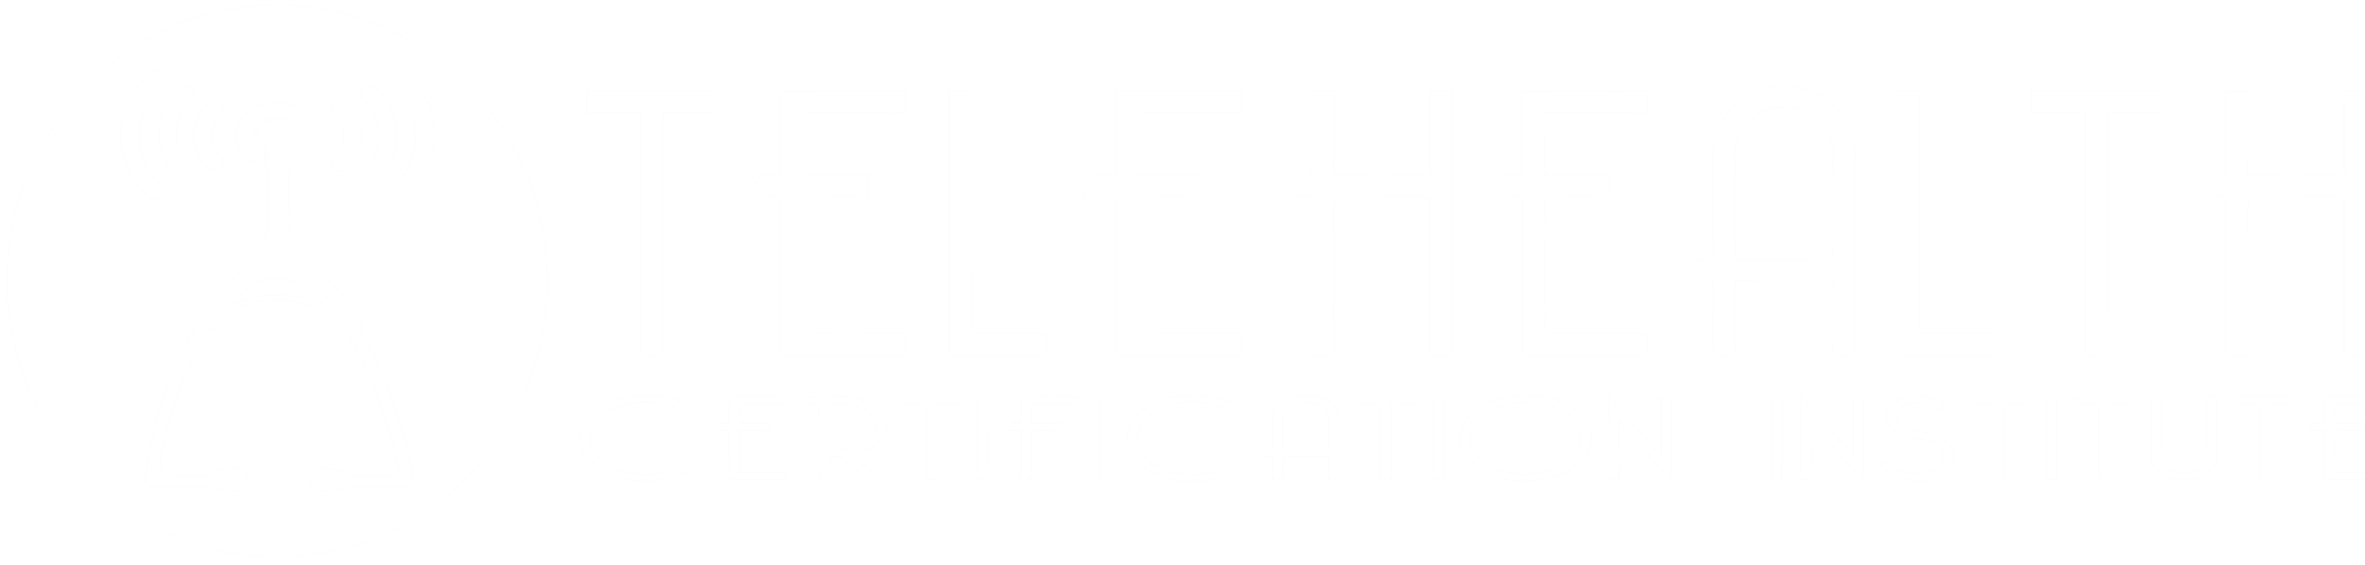 Telehealth Certification Institute Logo